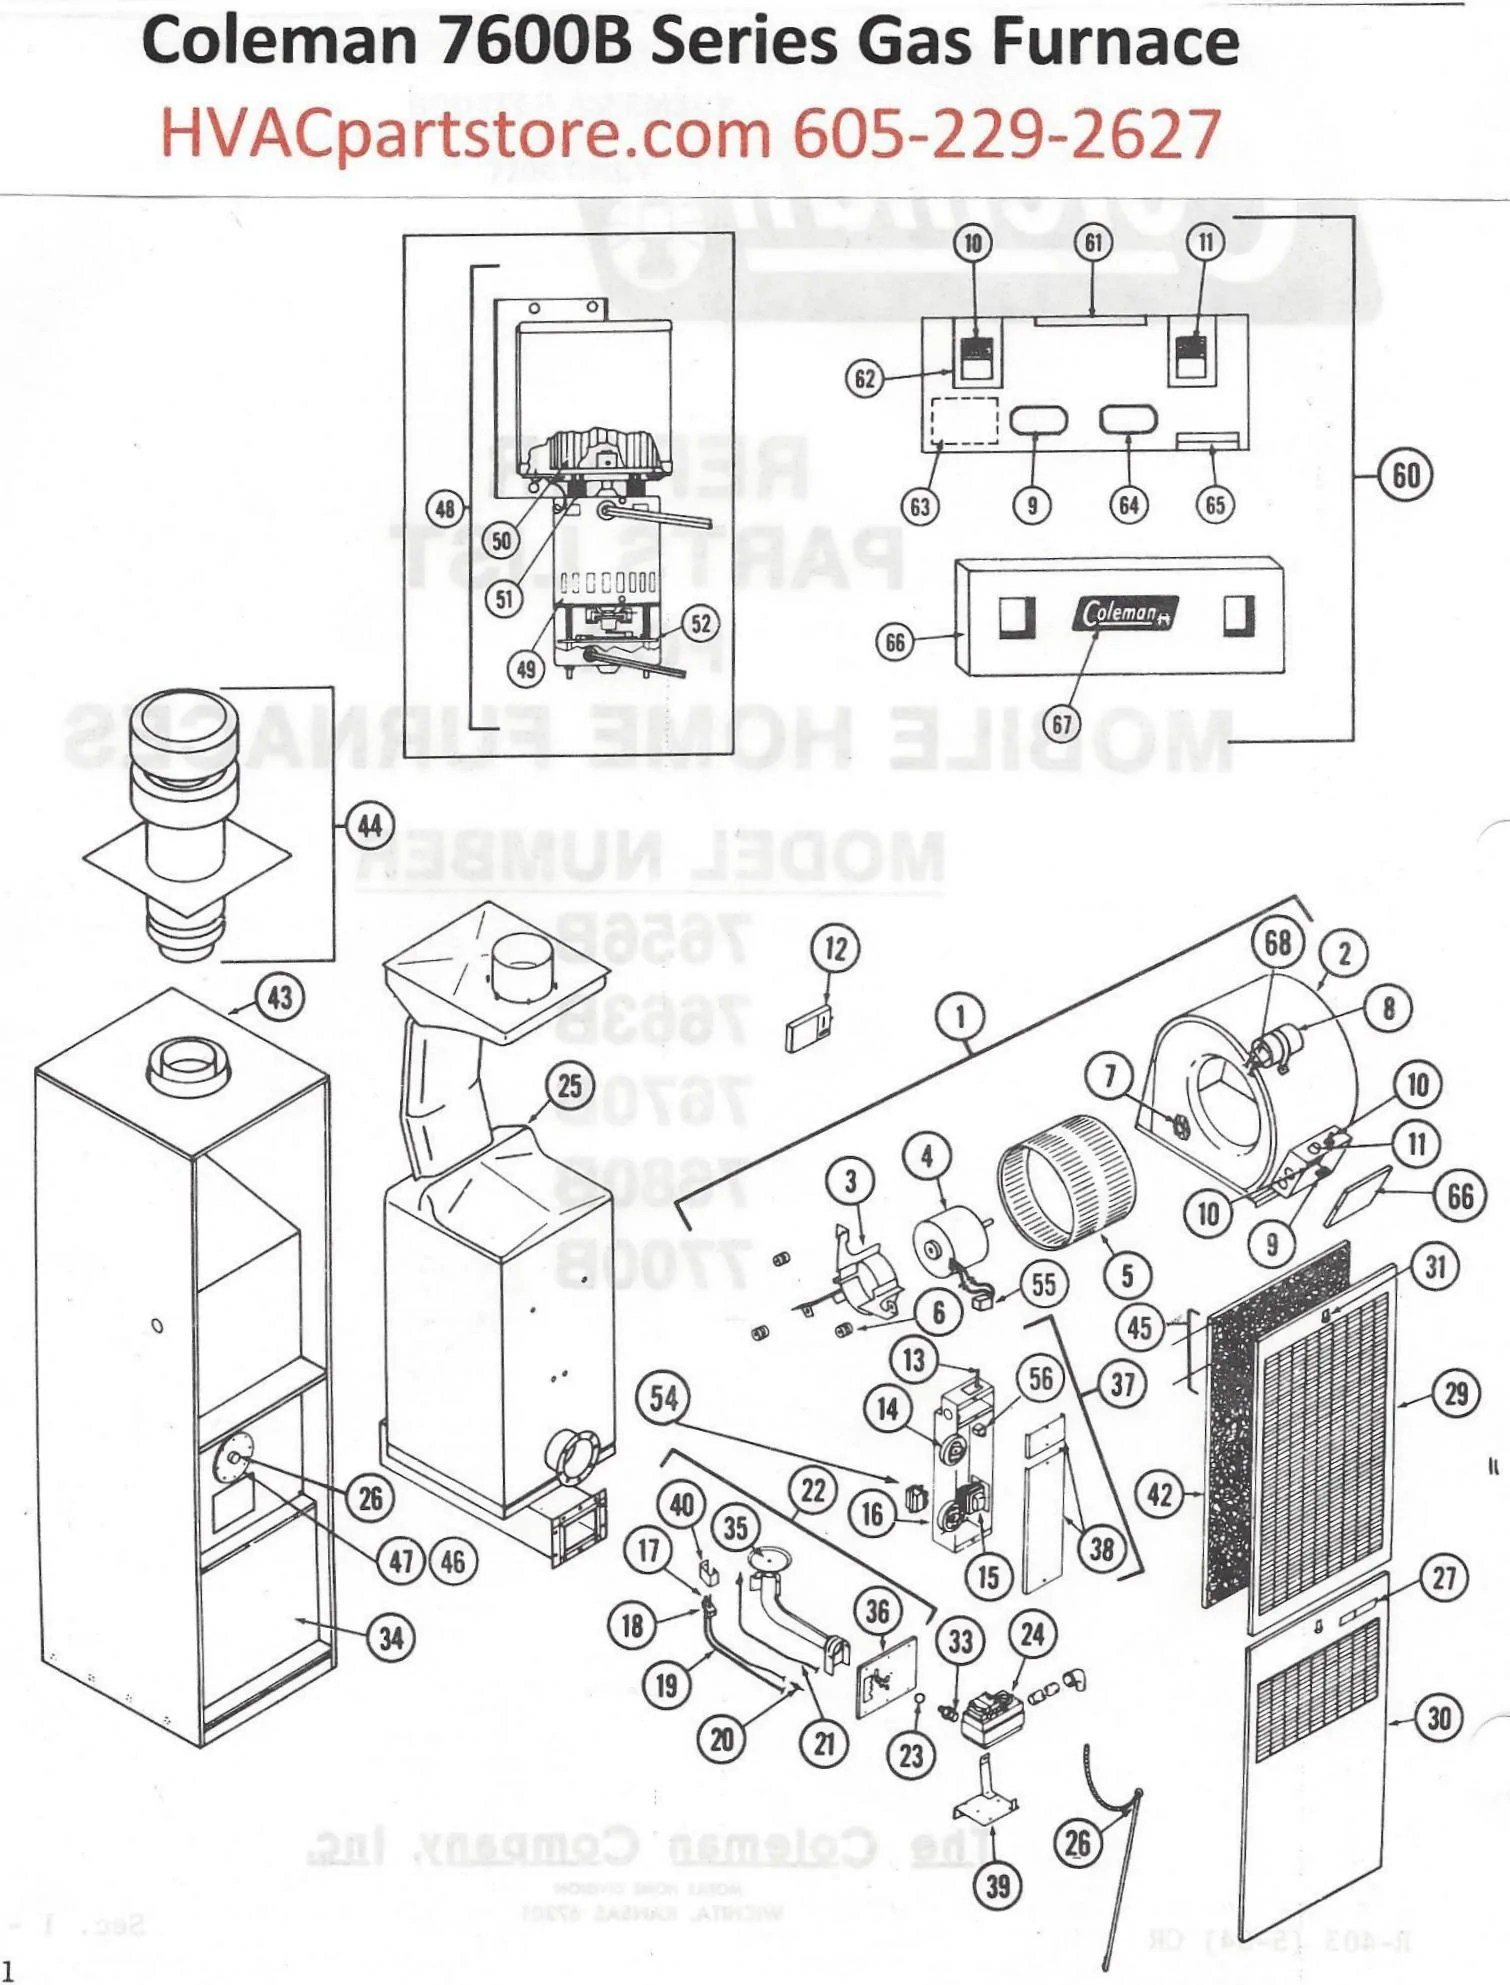 medium resolution of 7670b856 coleman gas furnace parts hvacpartstore coleman gas furnace diagram